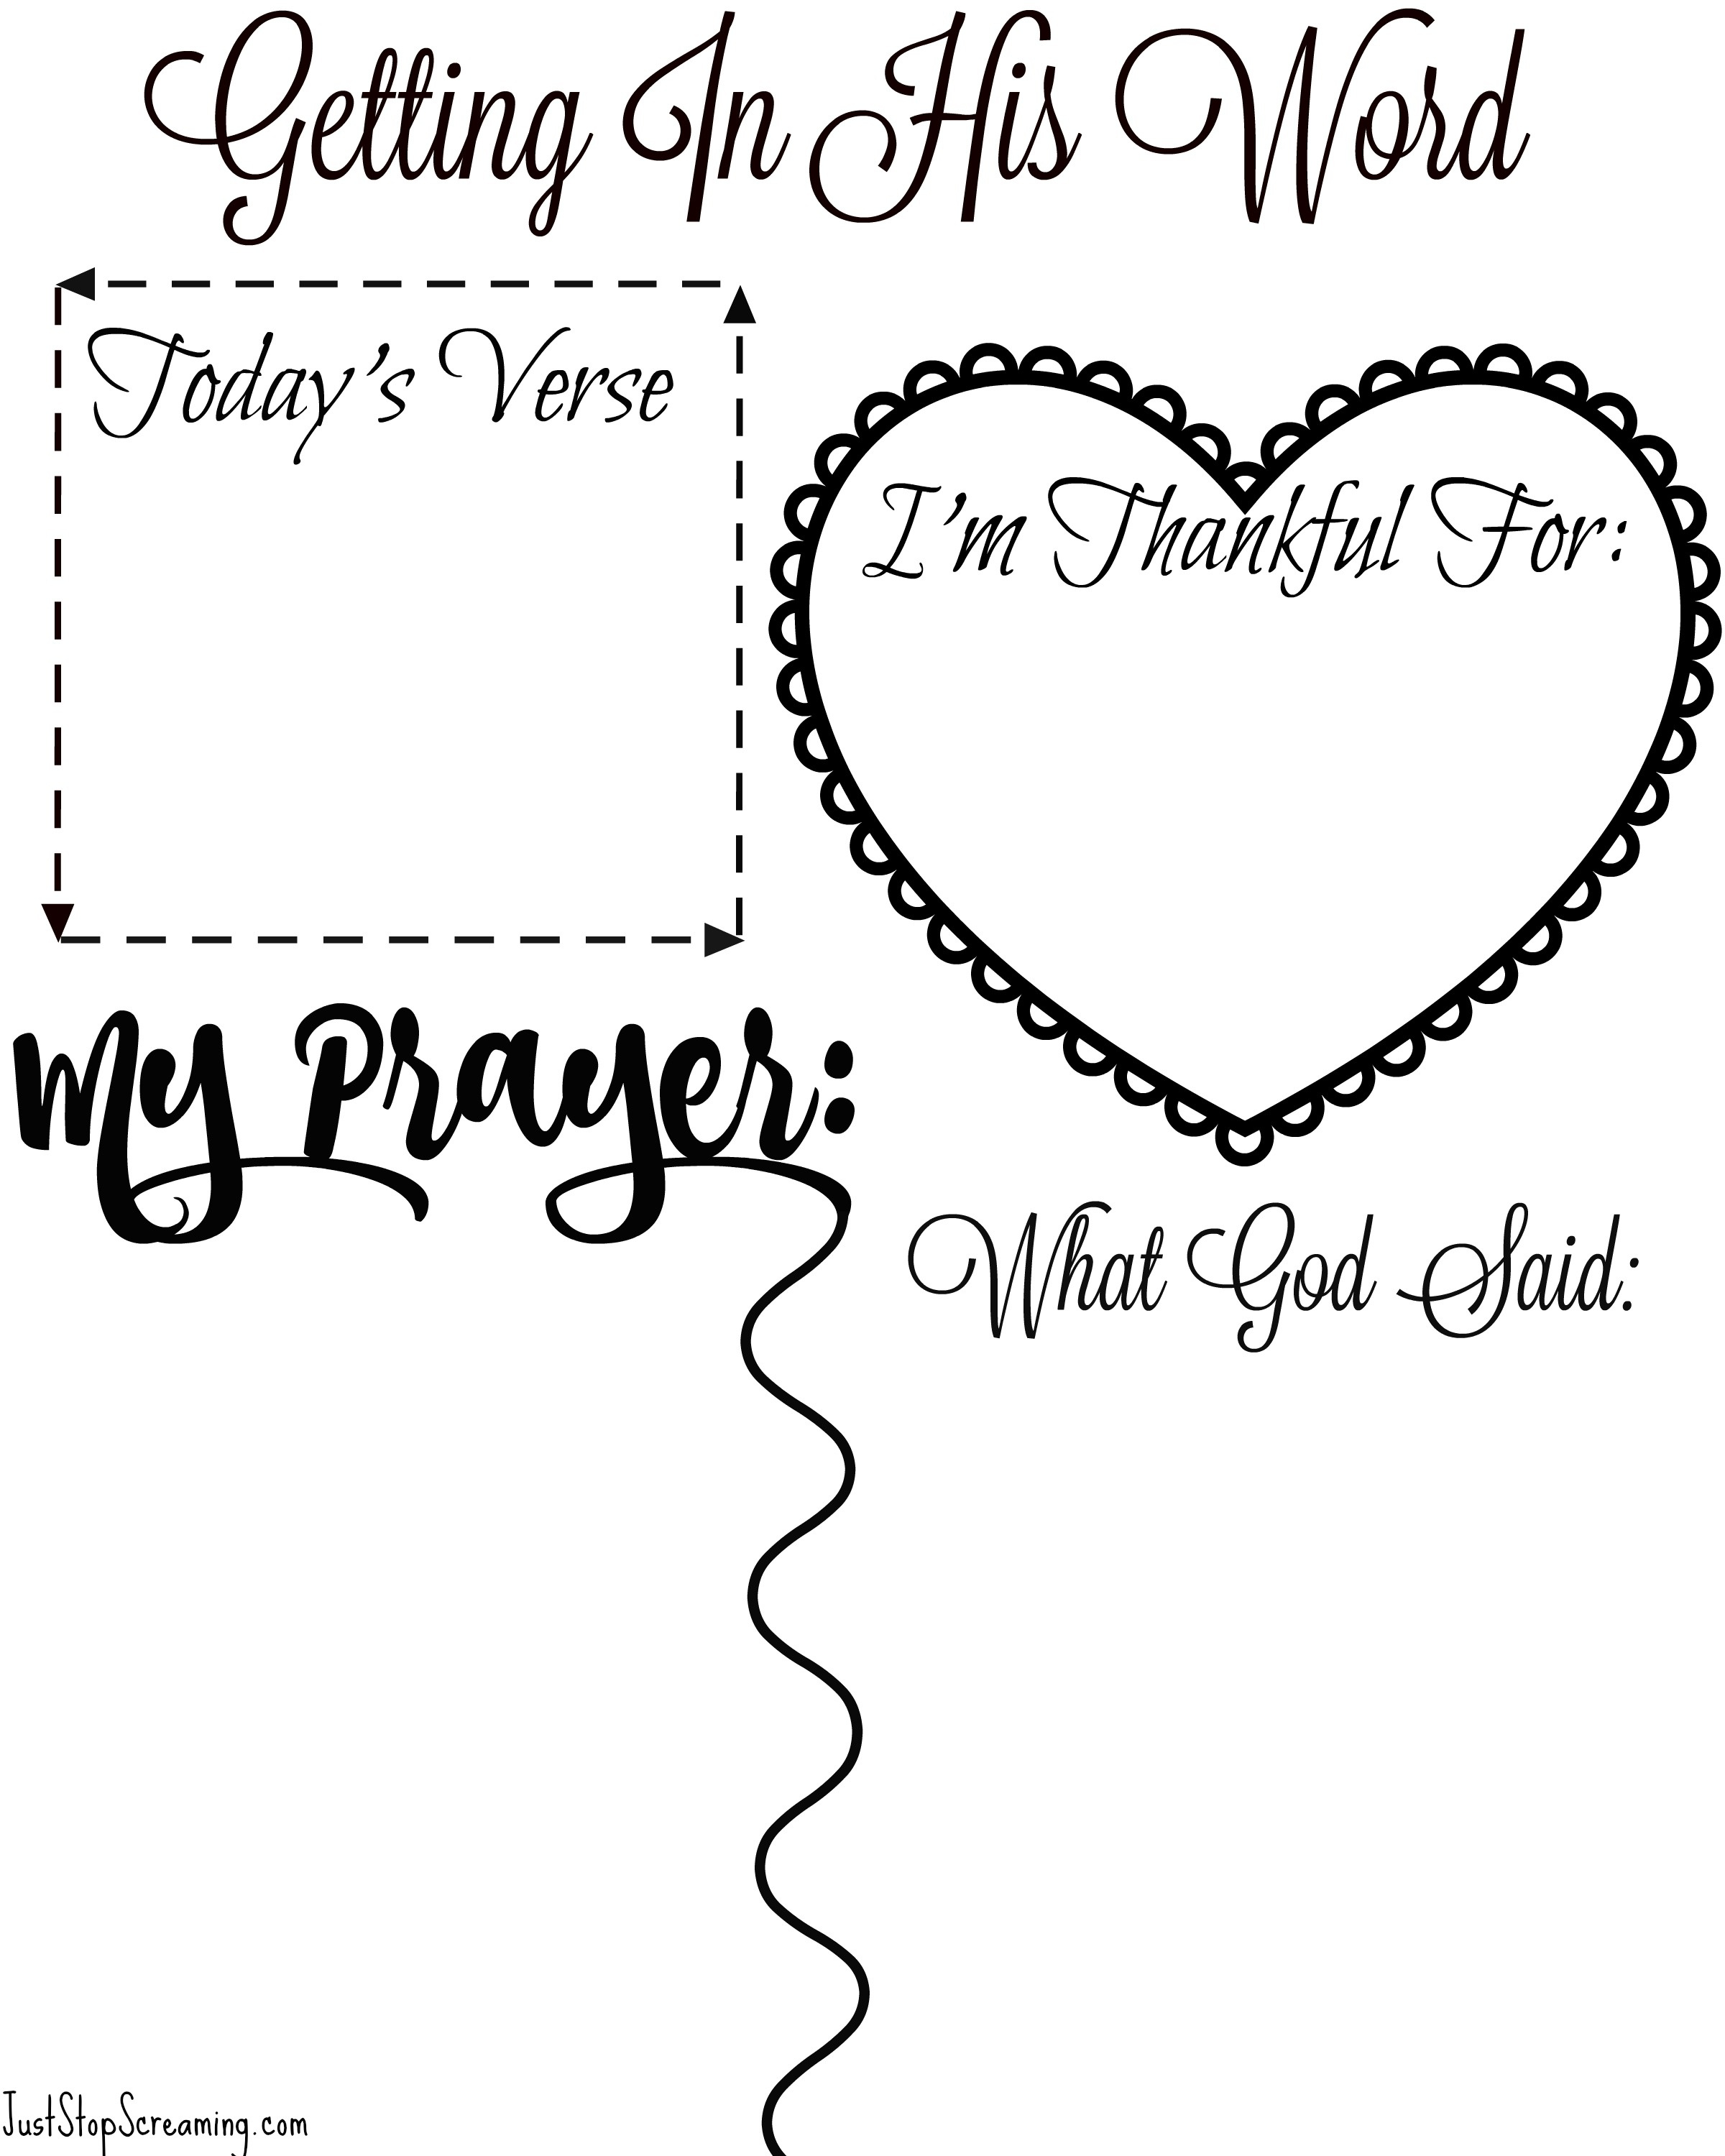 Free Bible Study Printable For Adults And Kids - Free Printable Bible Lessons For Women